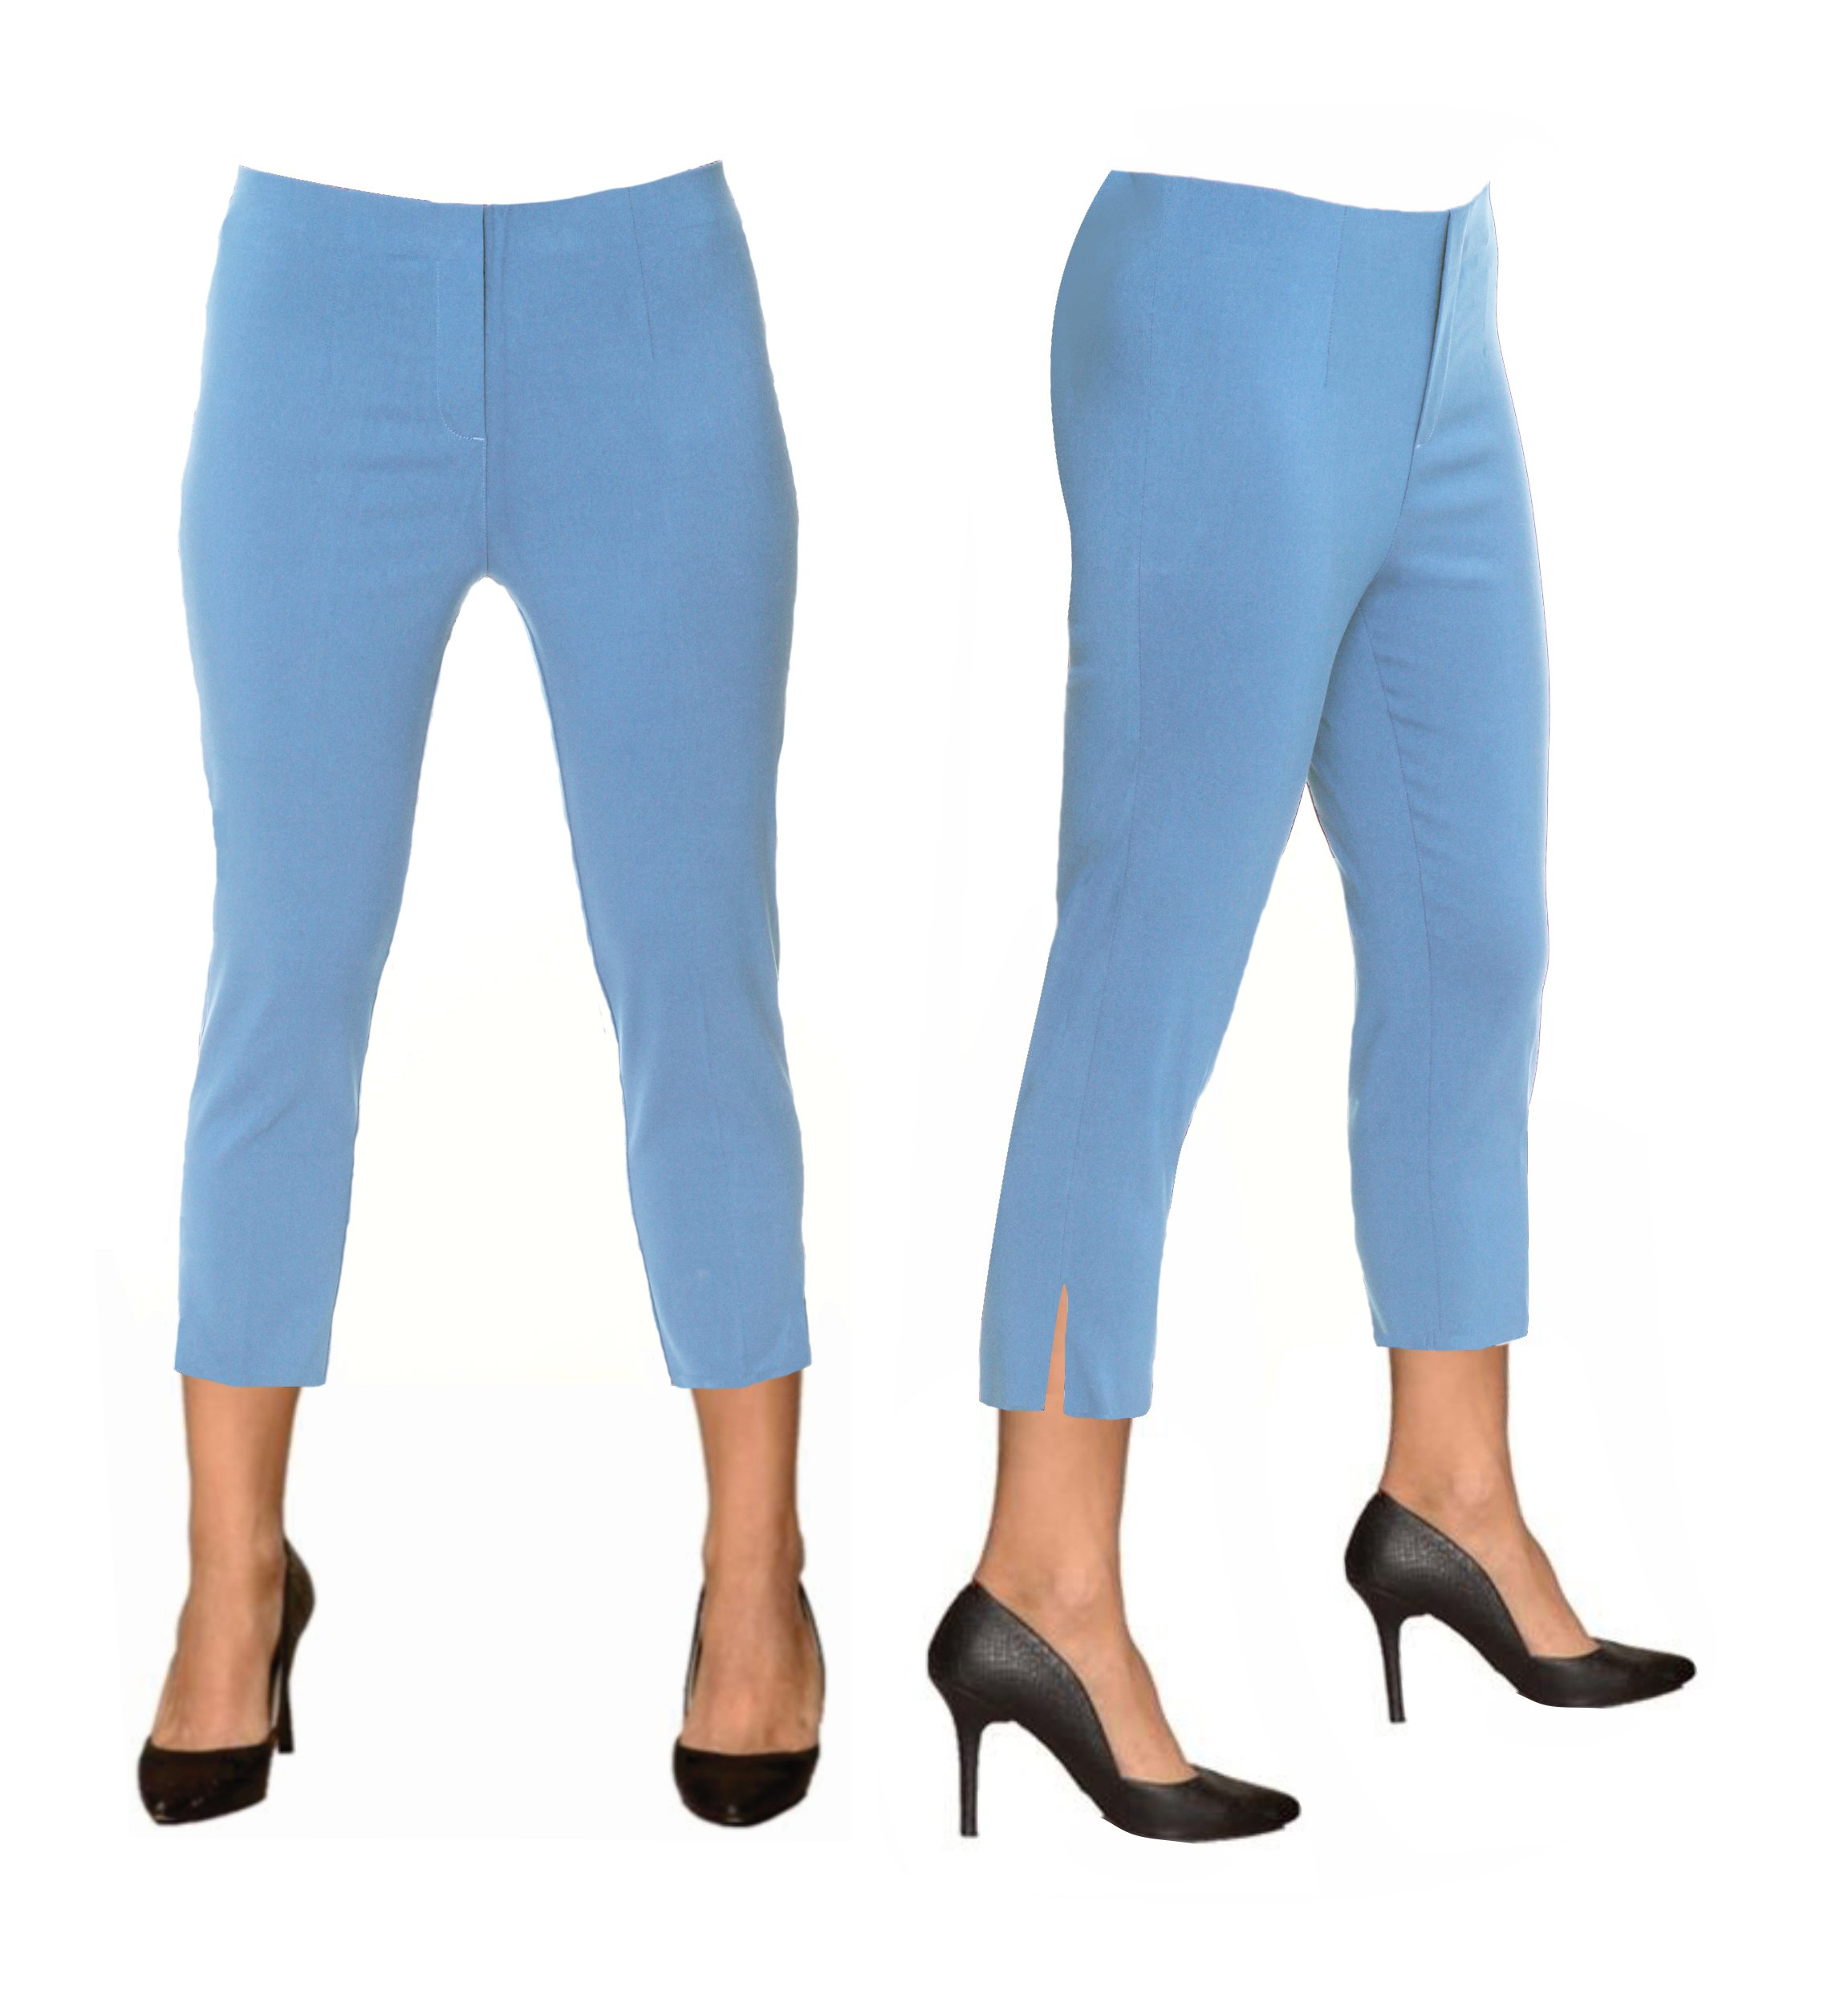 Lior paris Sidney Capri in The Famous Sasha Fit! (10, Chambray)